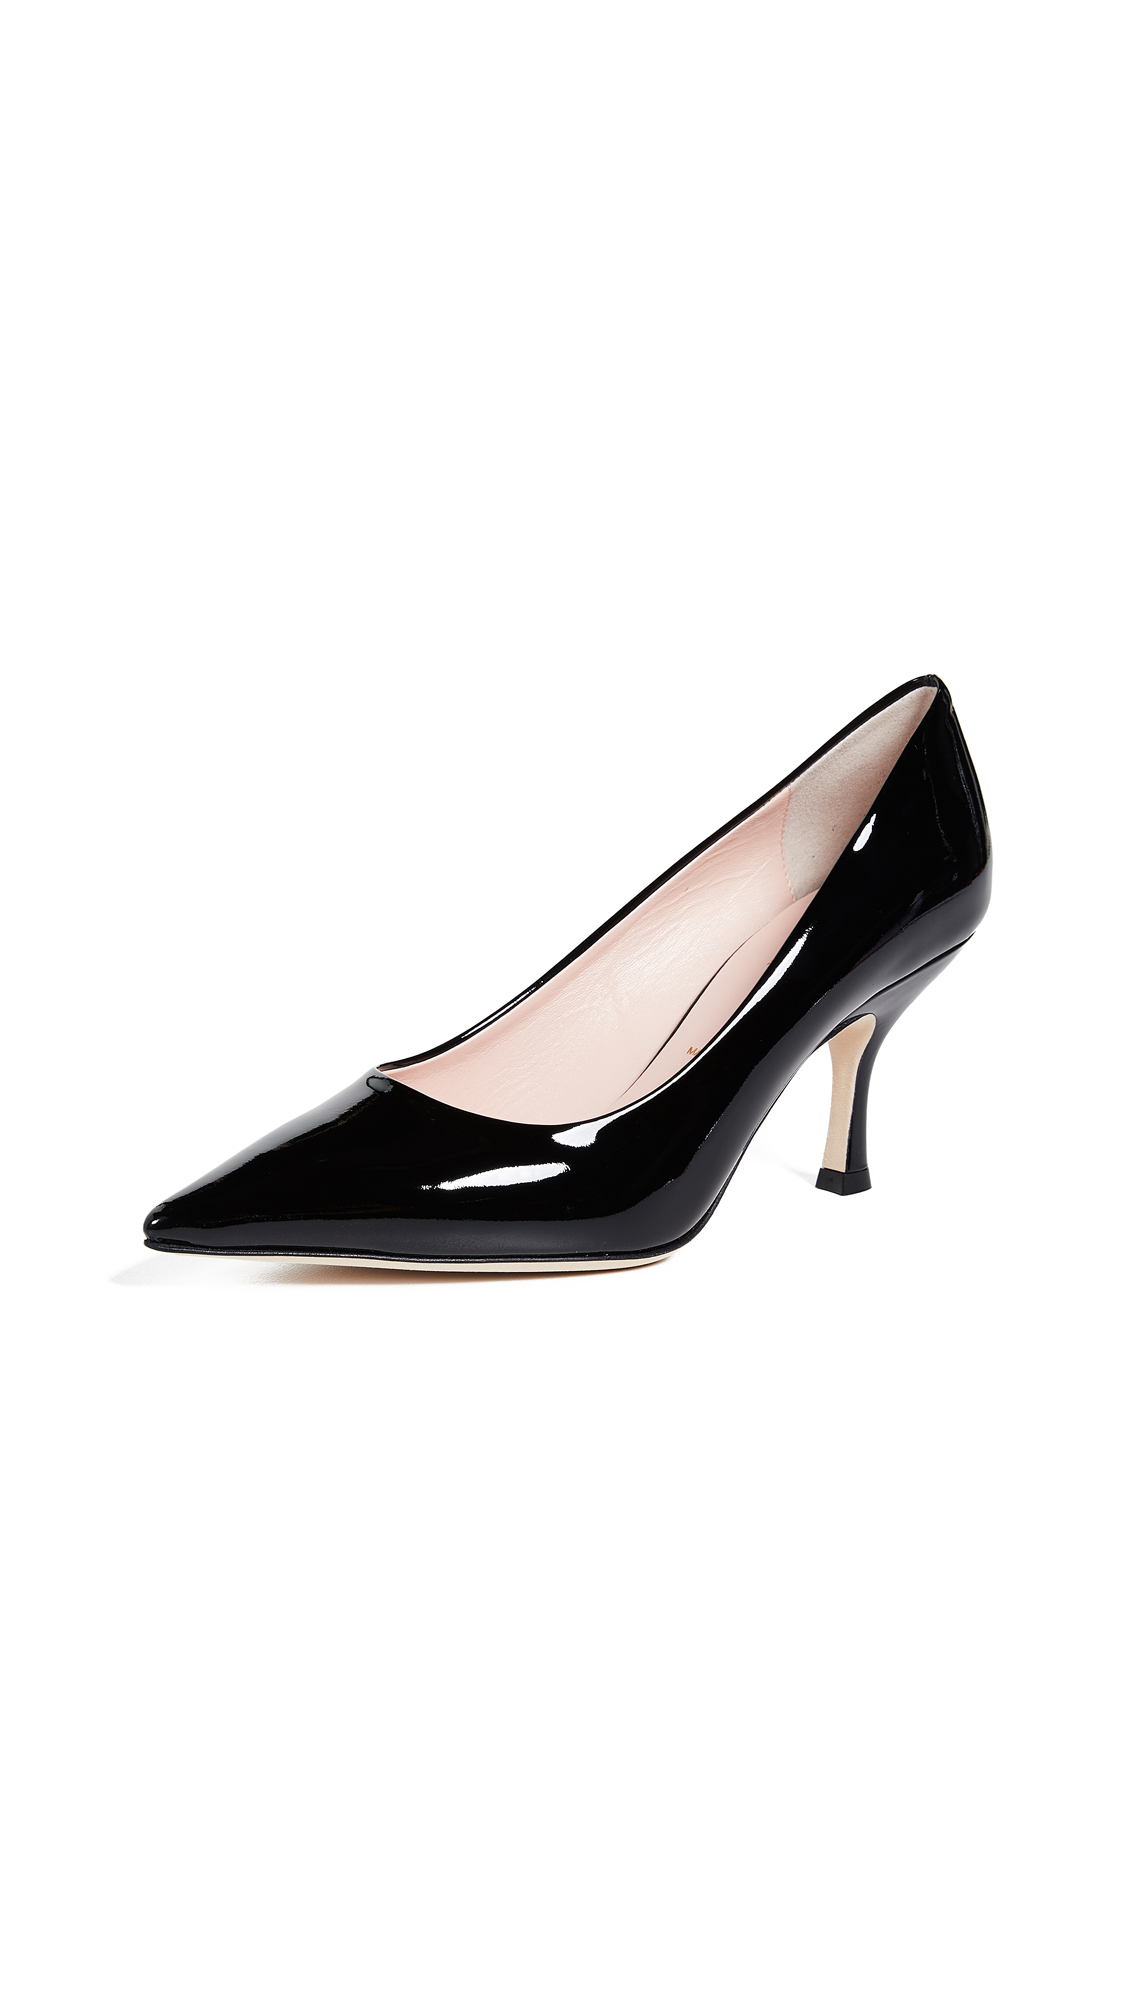 Kate Spade New York Sonia Point Toe Pumps - Black